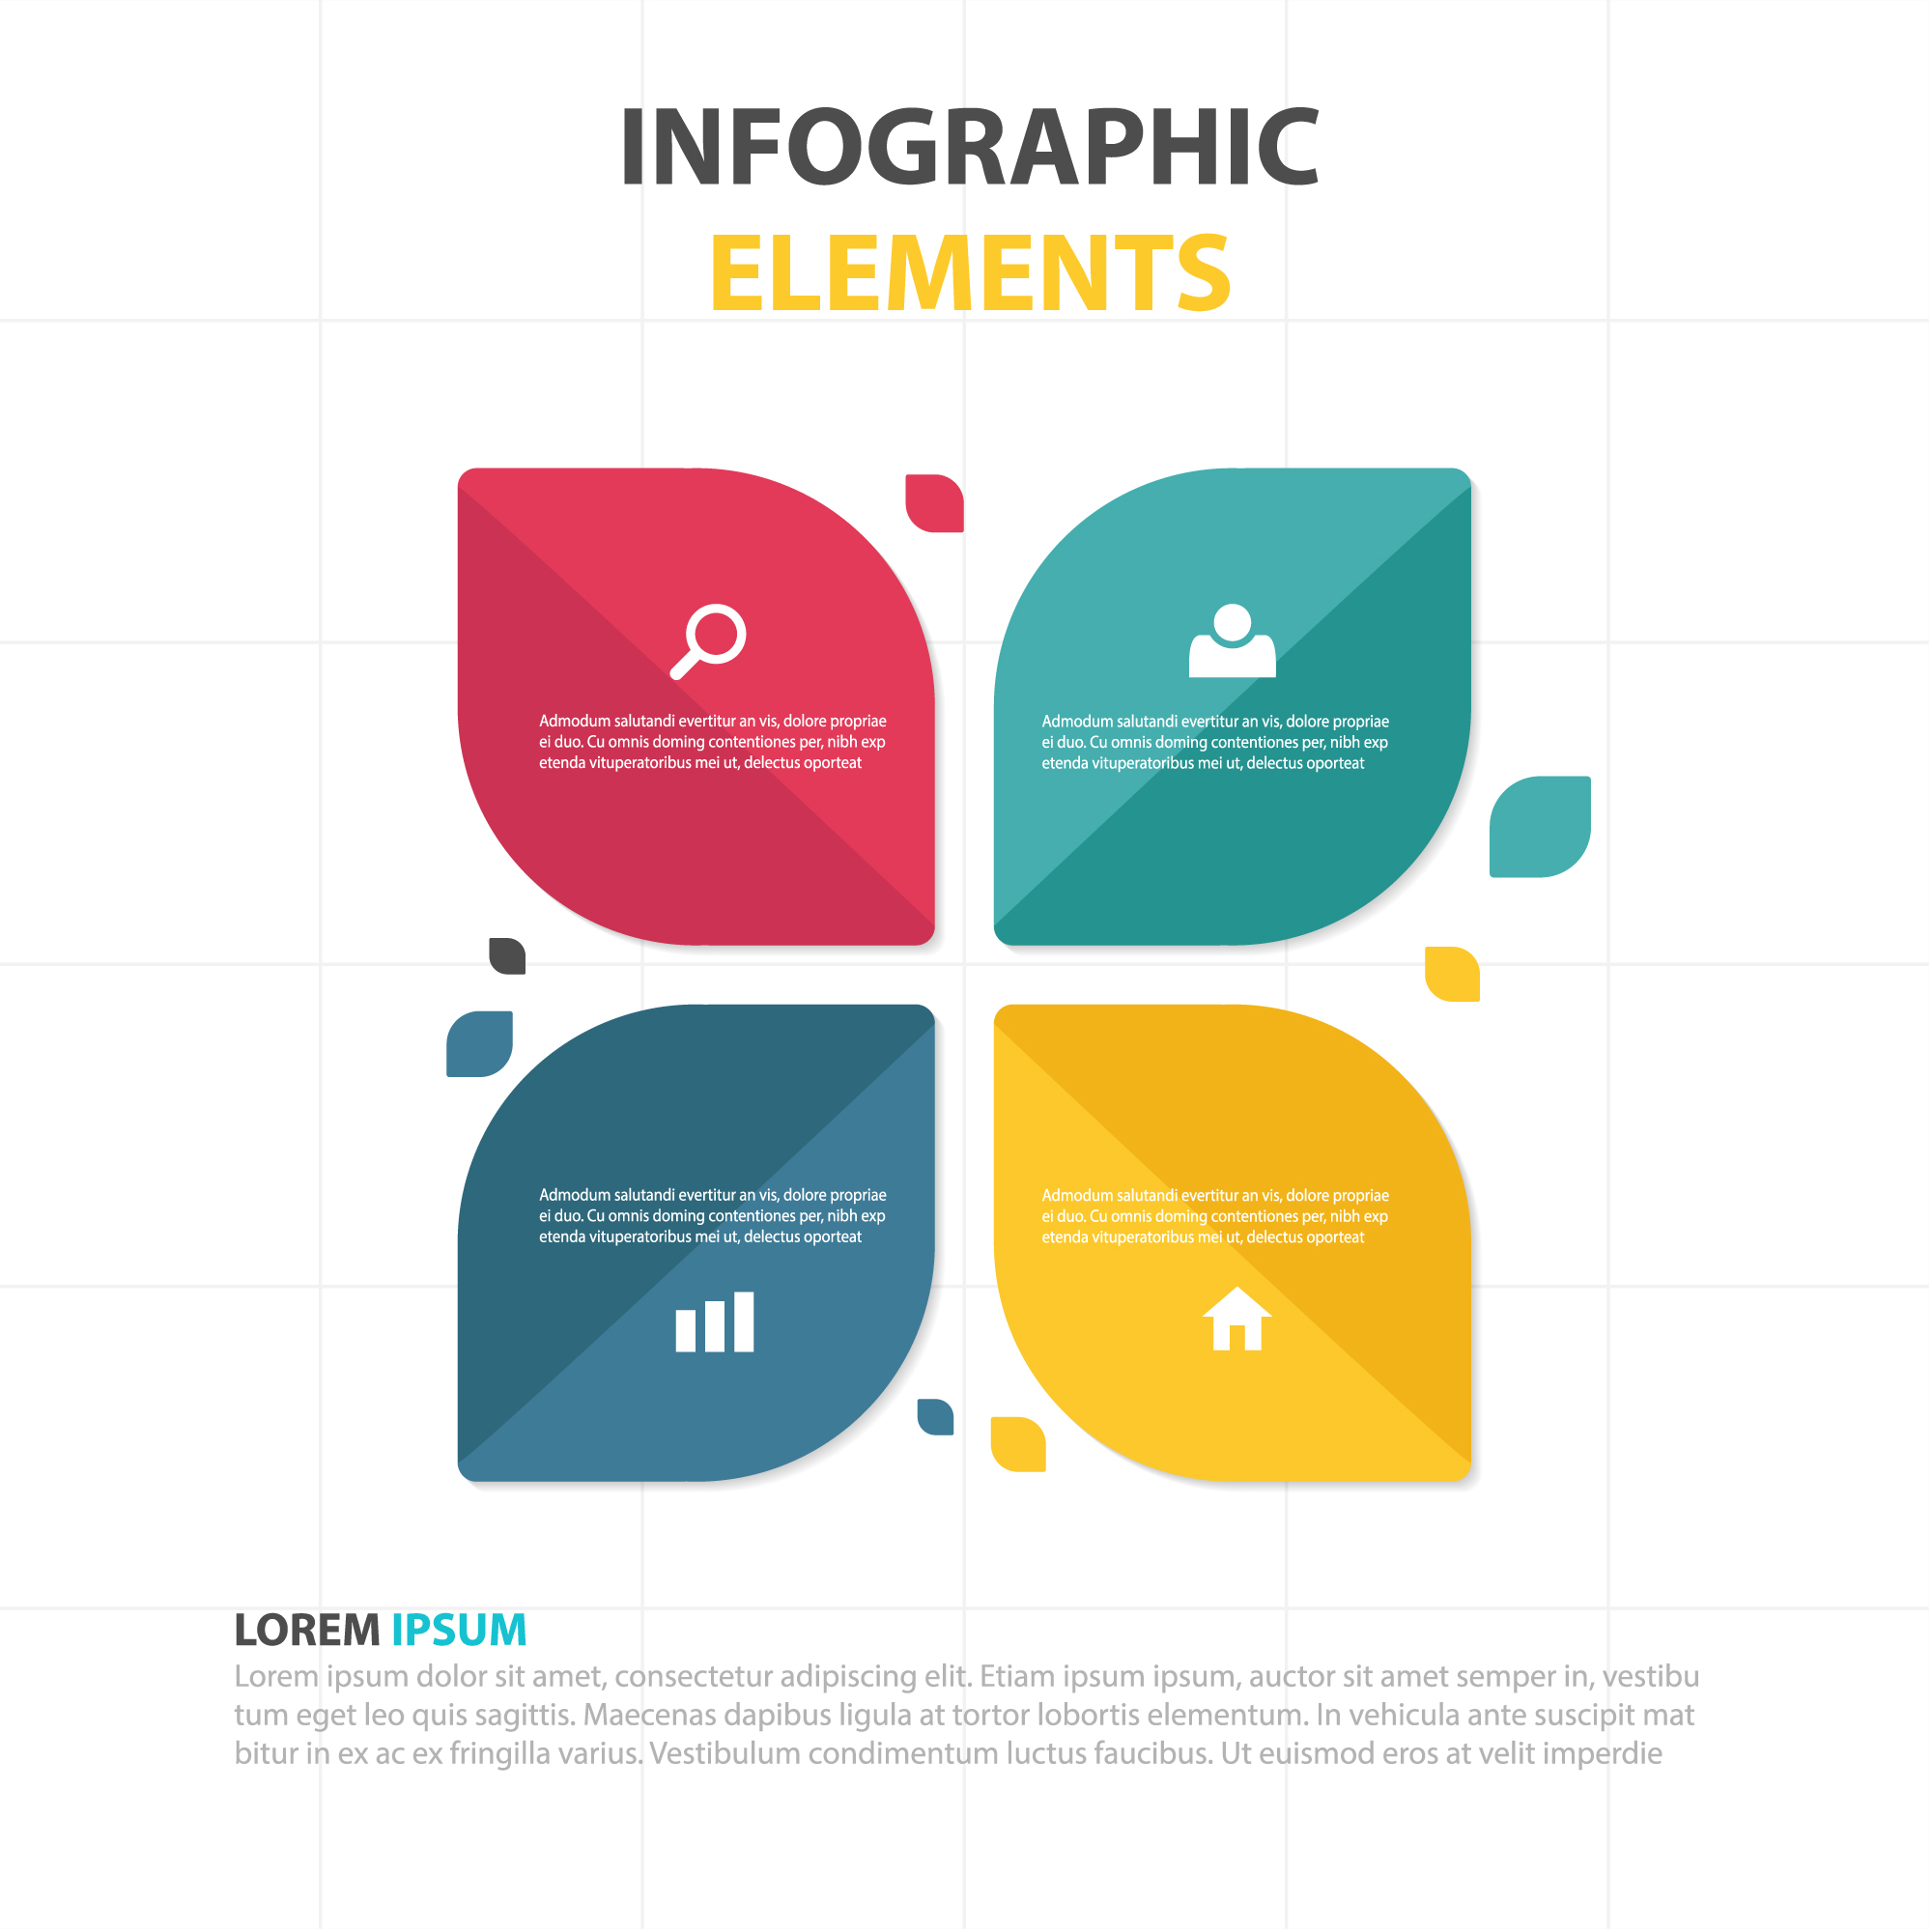 Foglie colorate astratto modello di business infografica